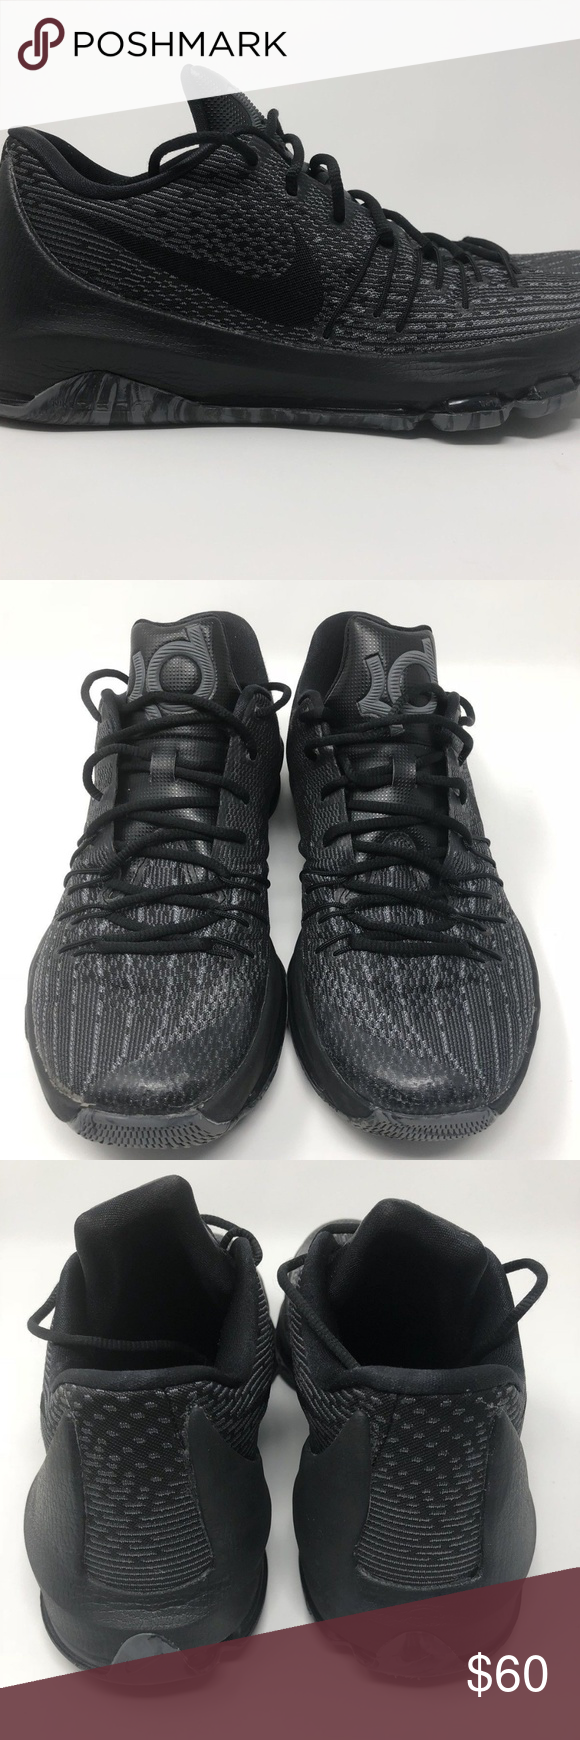 low cost 2fb6c 9ccf0 ... wholesale nike kd 8 blackout sz 10.5 item mens kd8 blackout basketball  shoes brand a0476 6ea6d